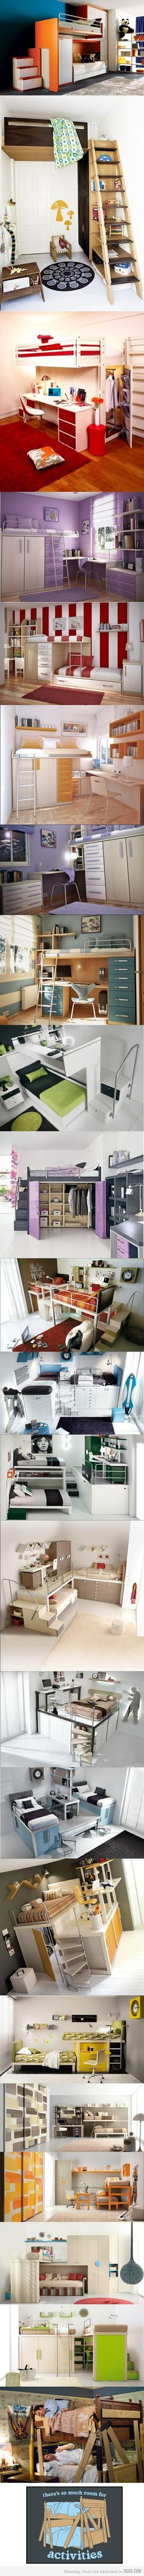 some great space saving ideas